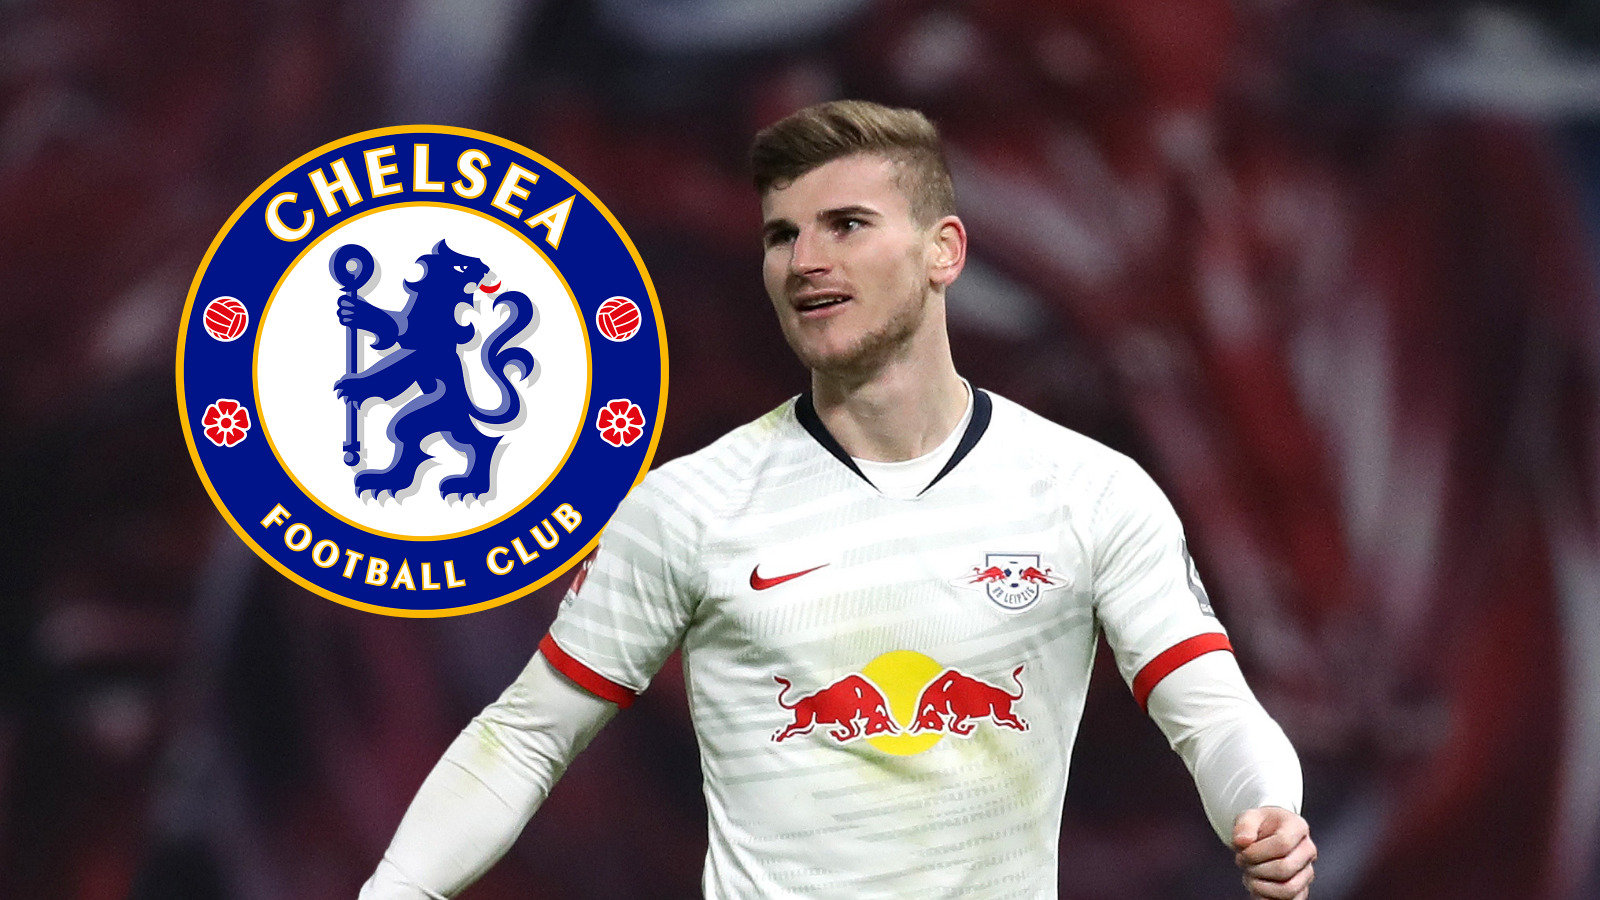 Chelsea finally sign Timo Werner from RB Leipzig on Five years deal